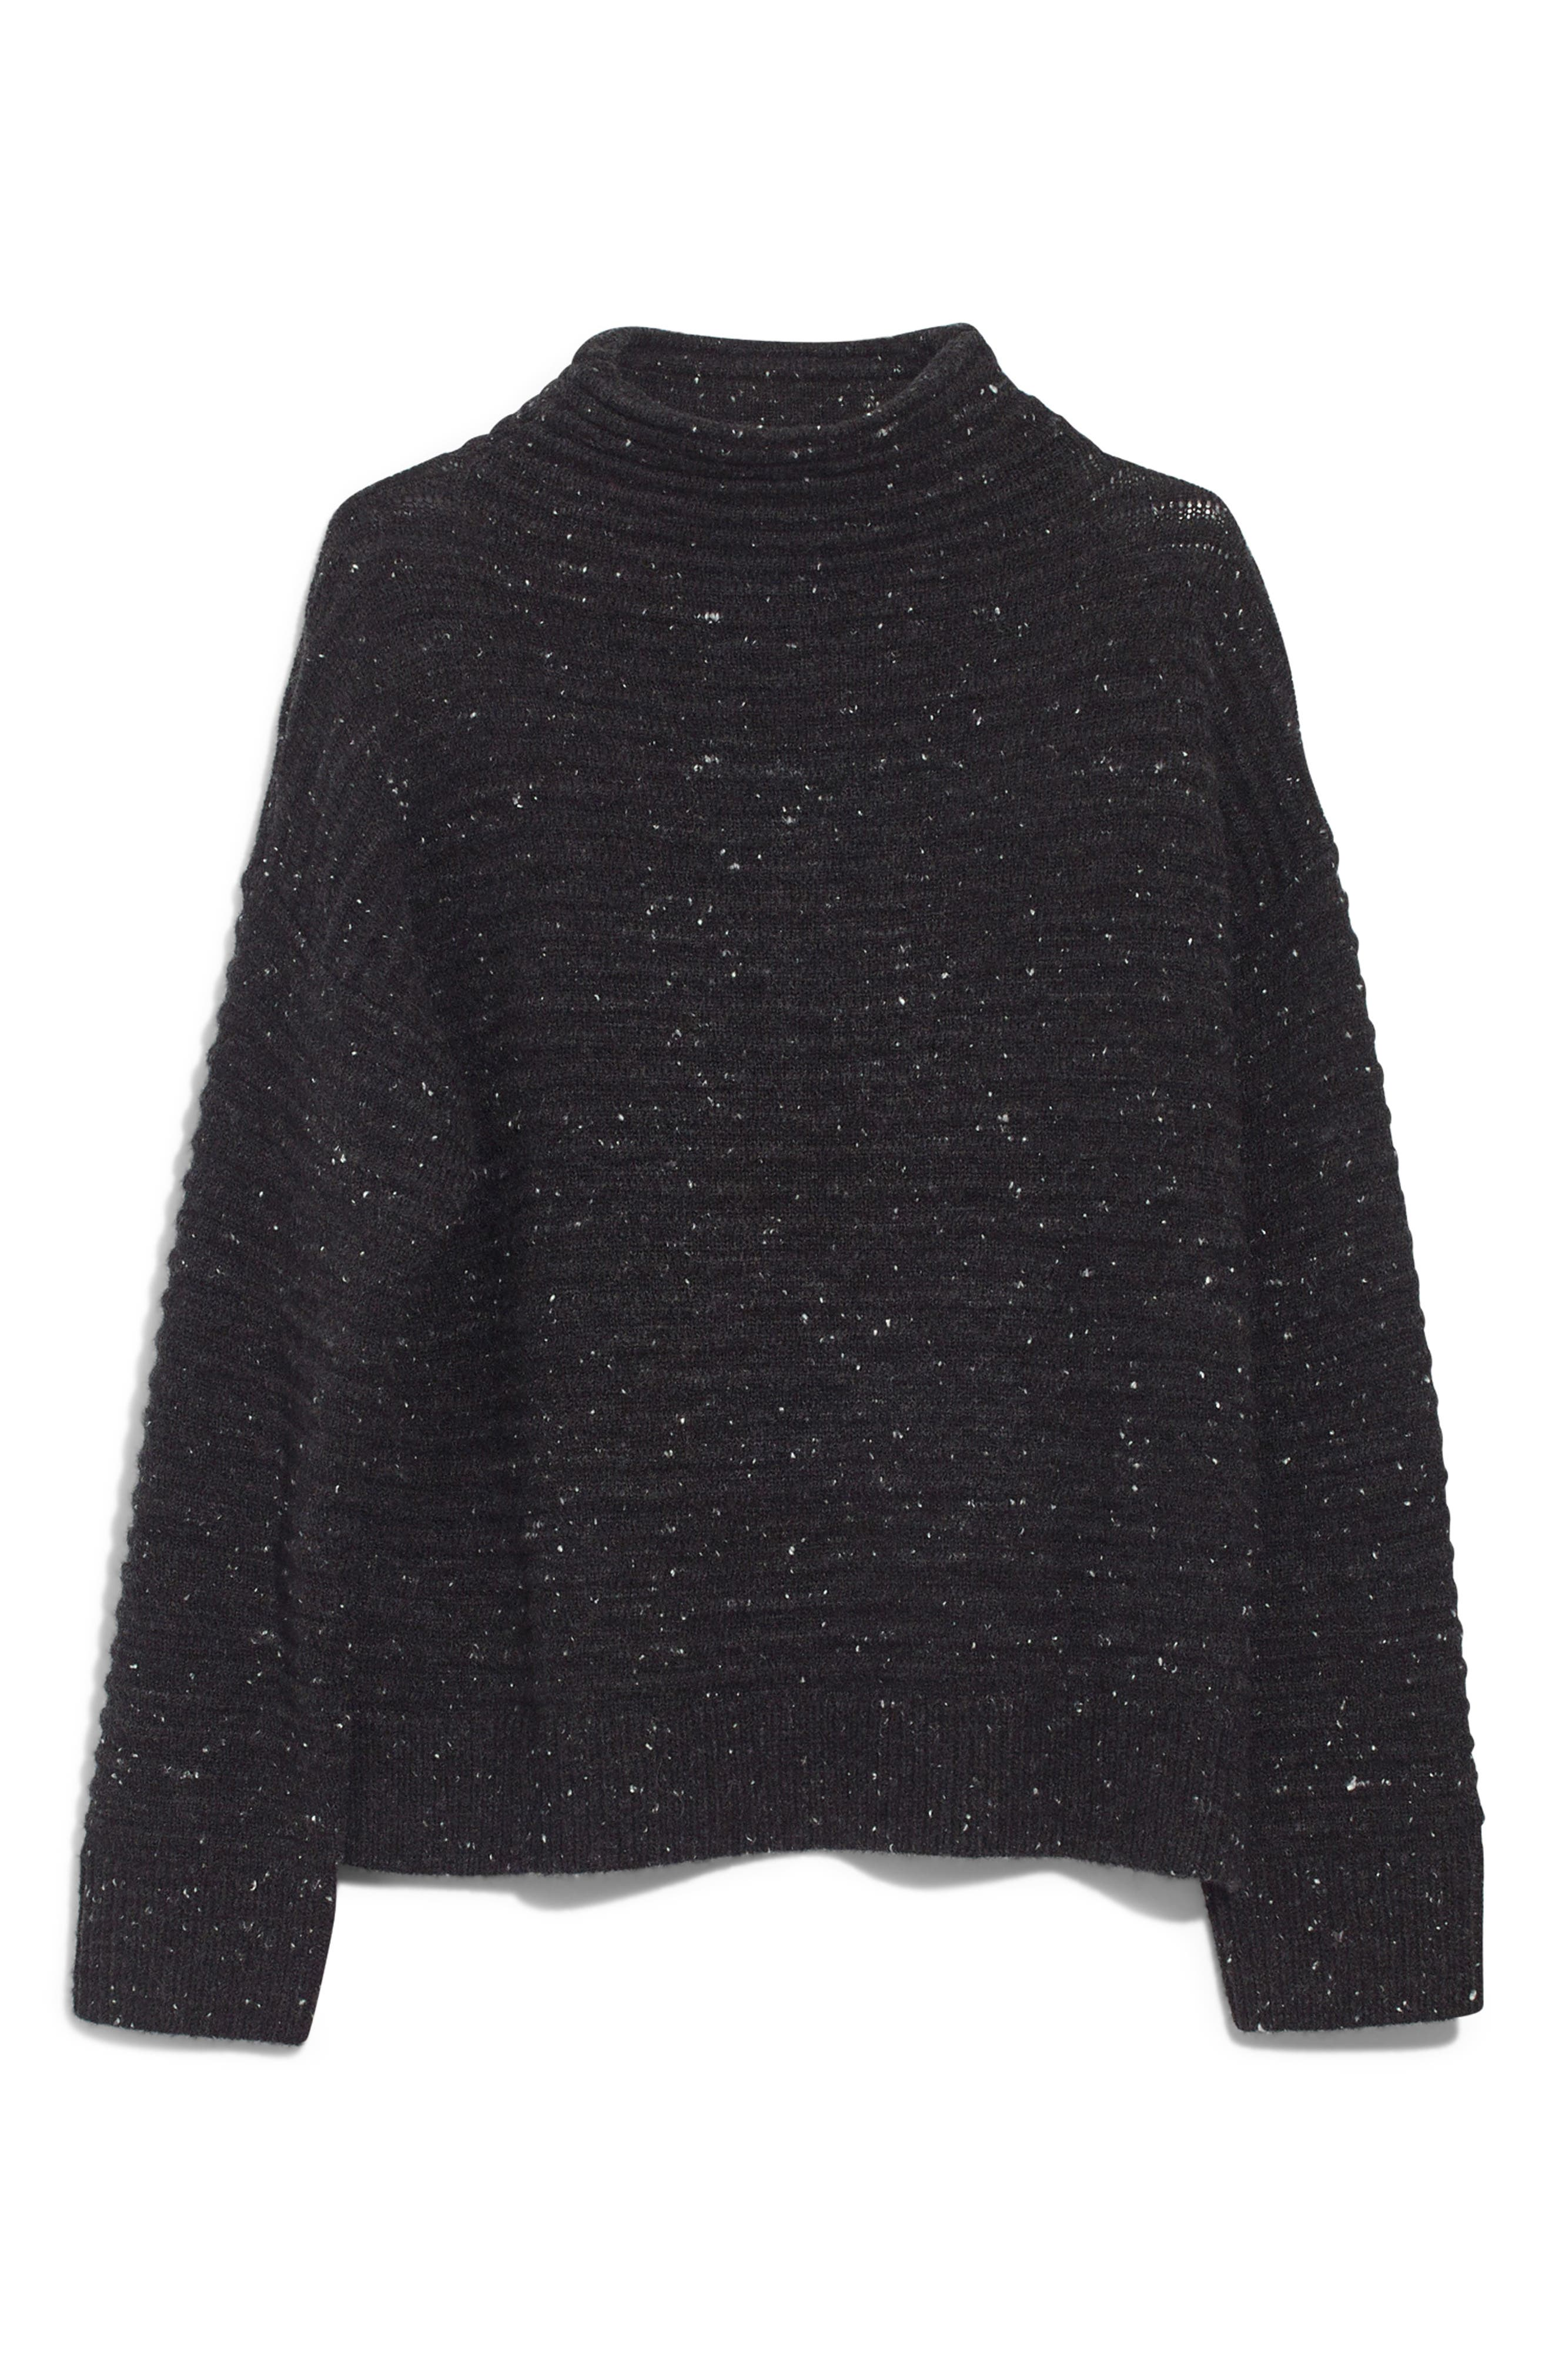 Belmont Donegal Mock Neck Sweater,                             Alternate thumbnail 6, color,                             DONEGAL STORM